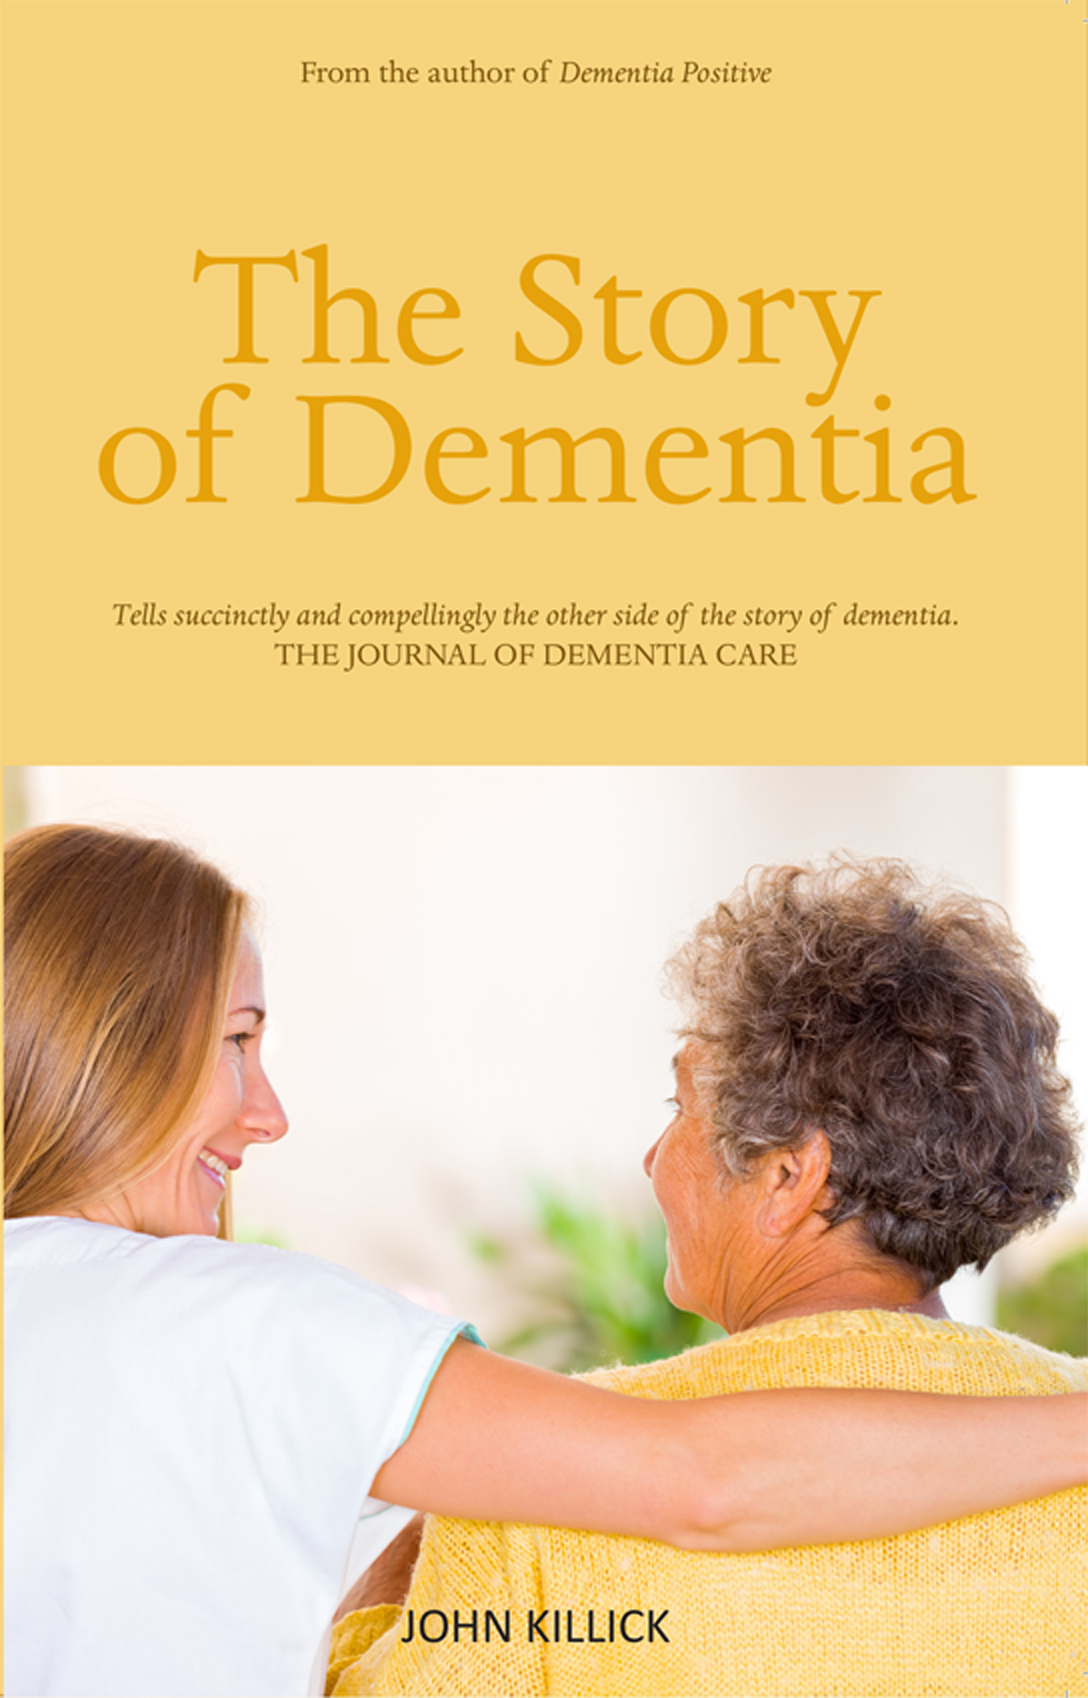 Story of Dementia book cover